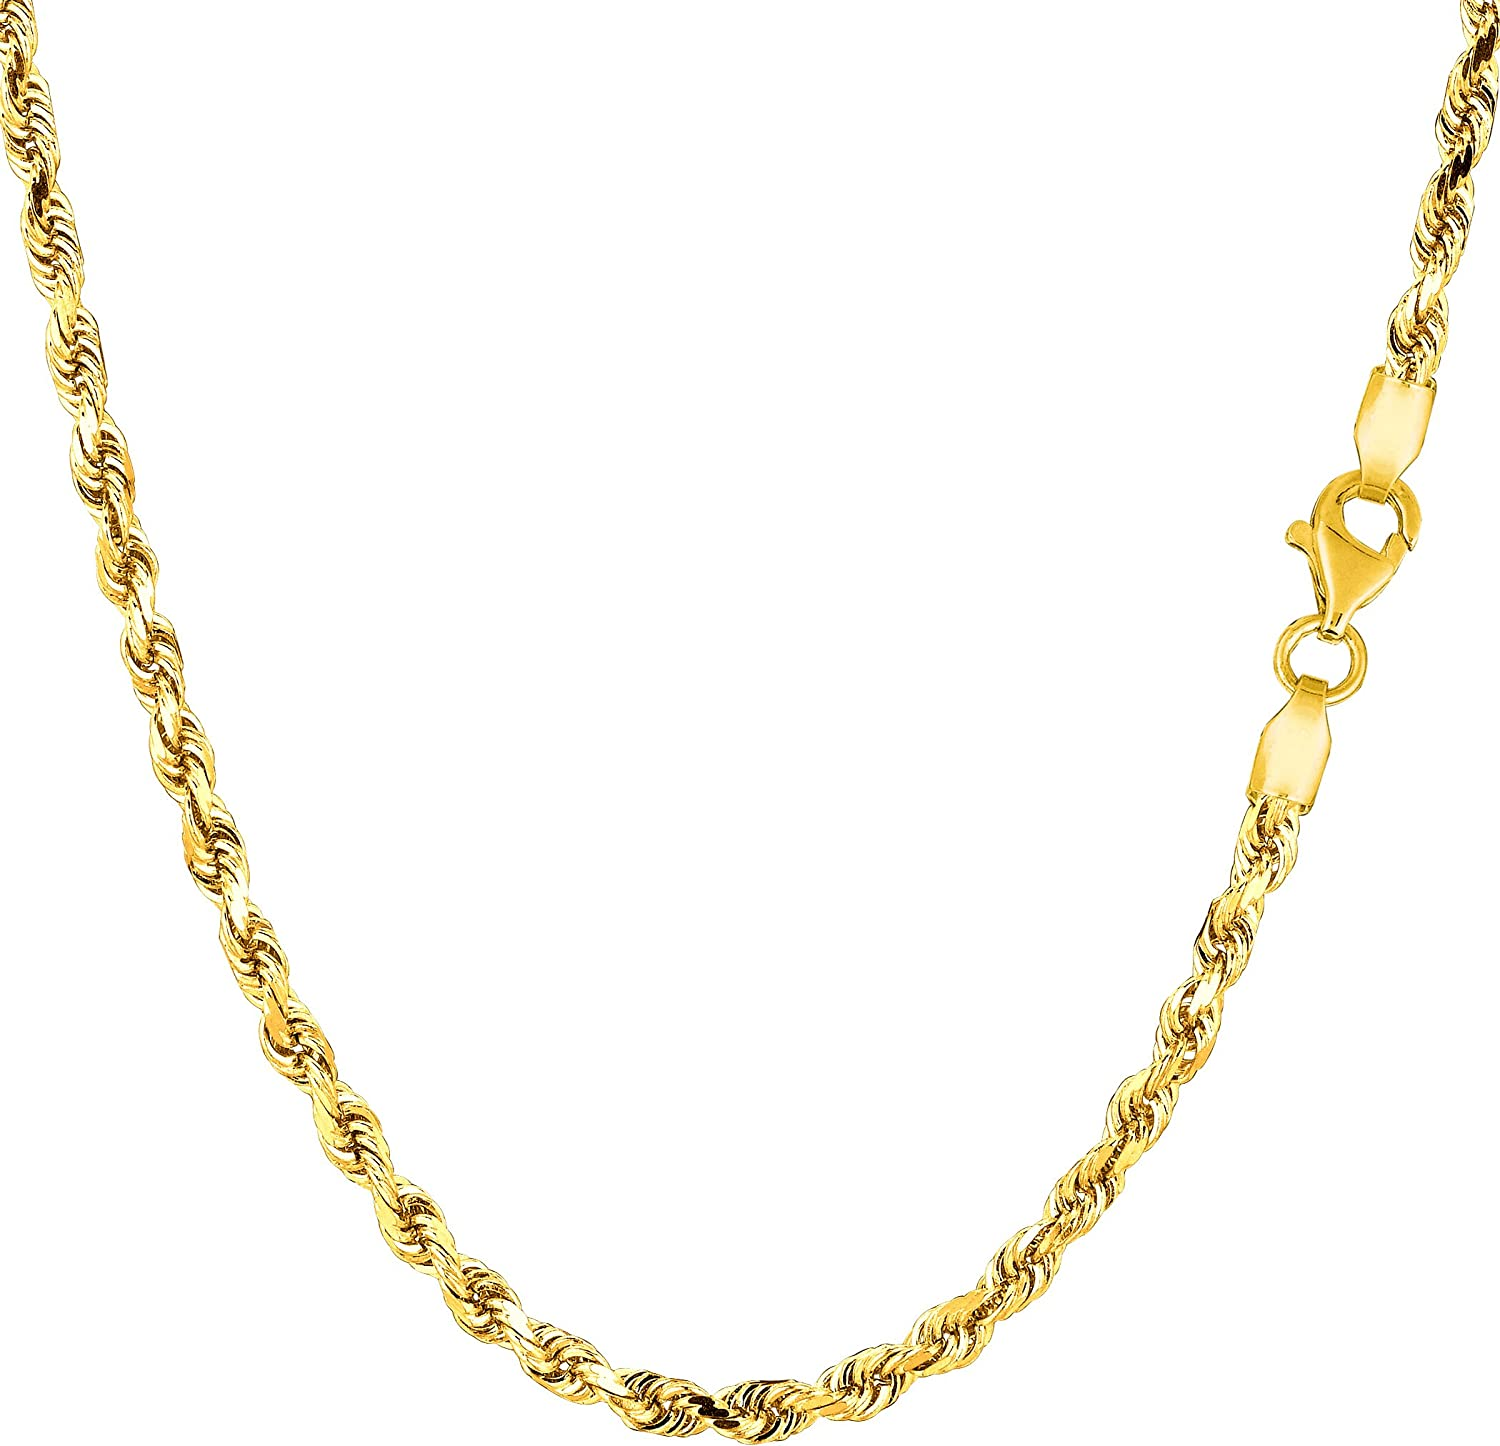 14K Yellow Gold Filled Solid Rope Chain Necklace, 3.2mm Wide